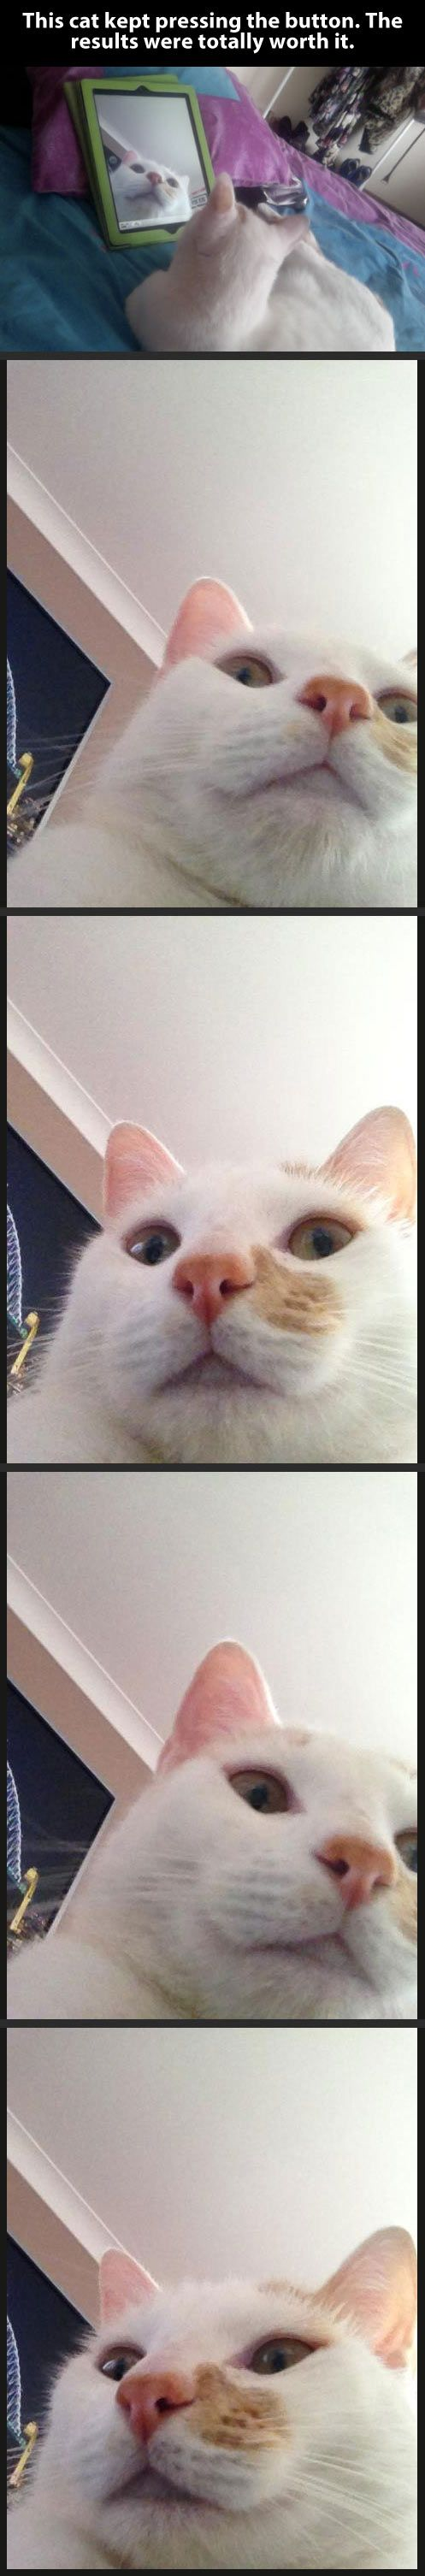 No filter! That cat takes better selfies than most people on insta xD